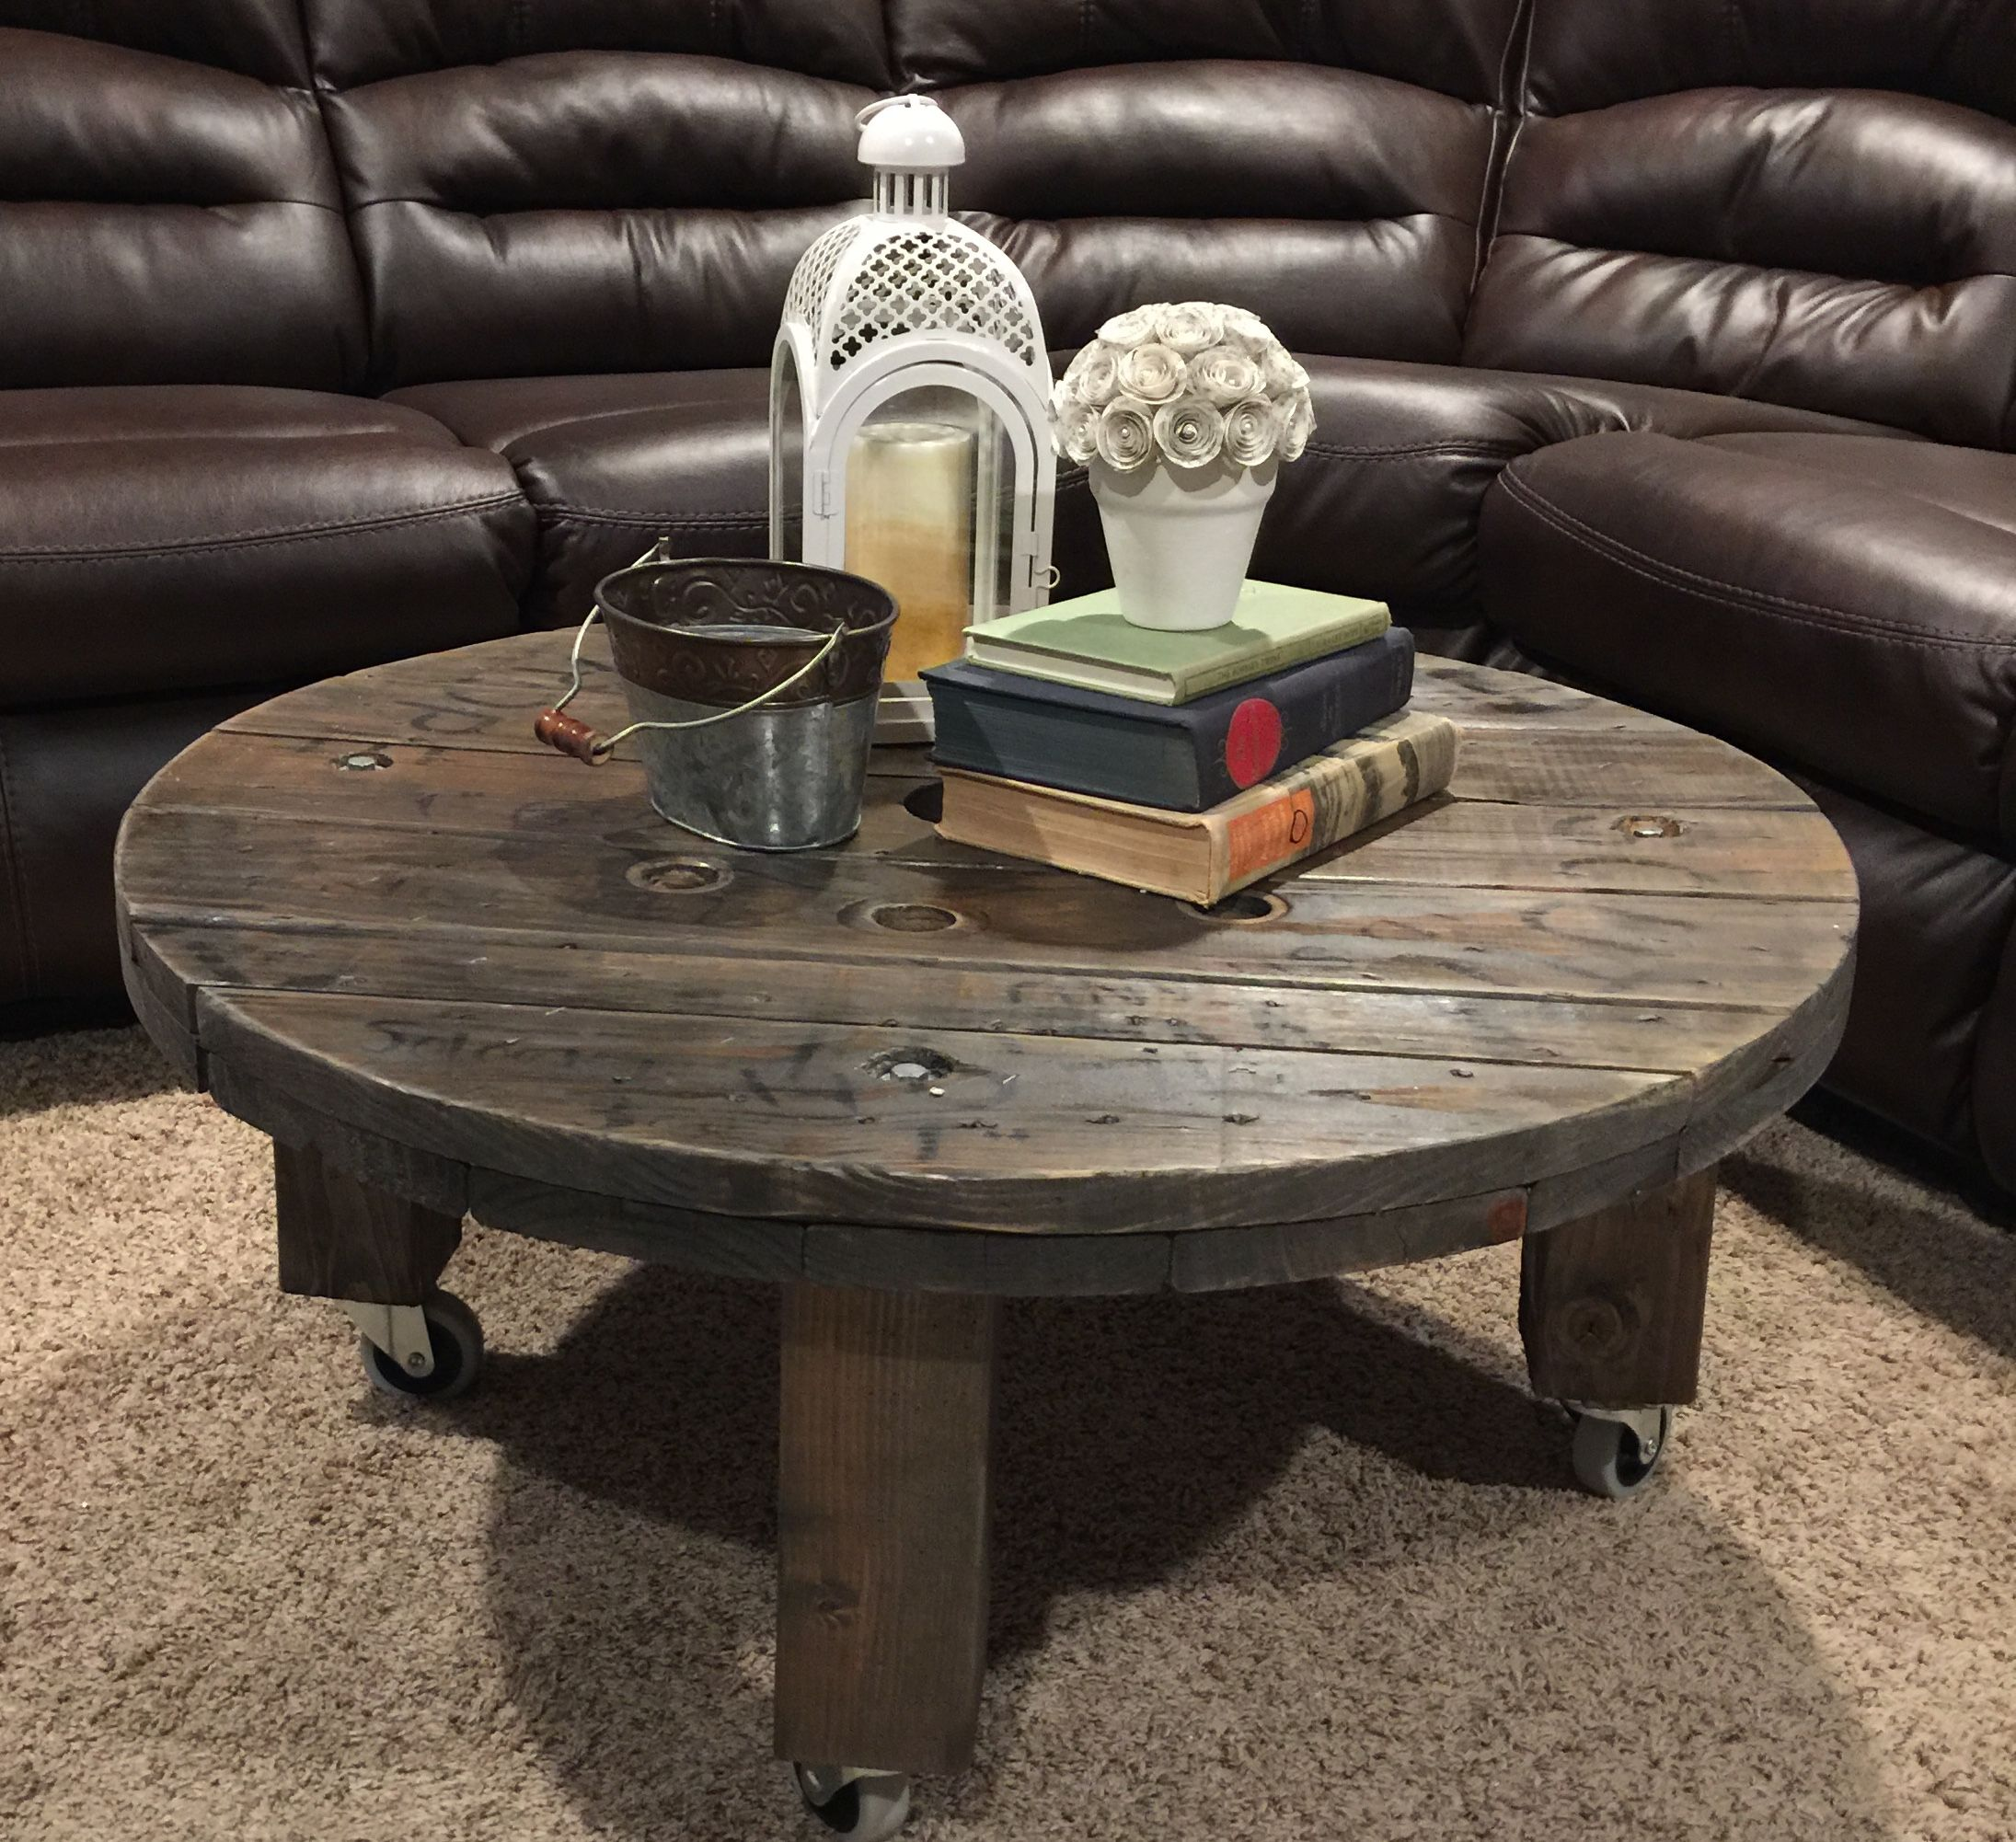 Couchtisch Kabeltrommel Wire Spool Coffee Table Spools Pinterest